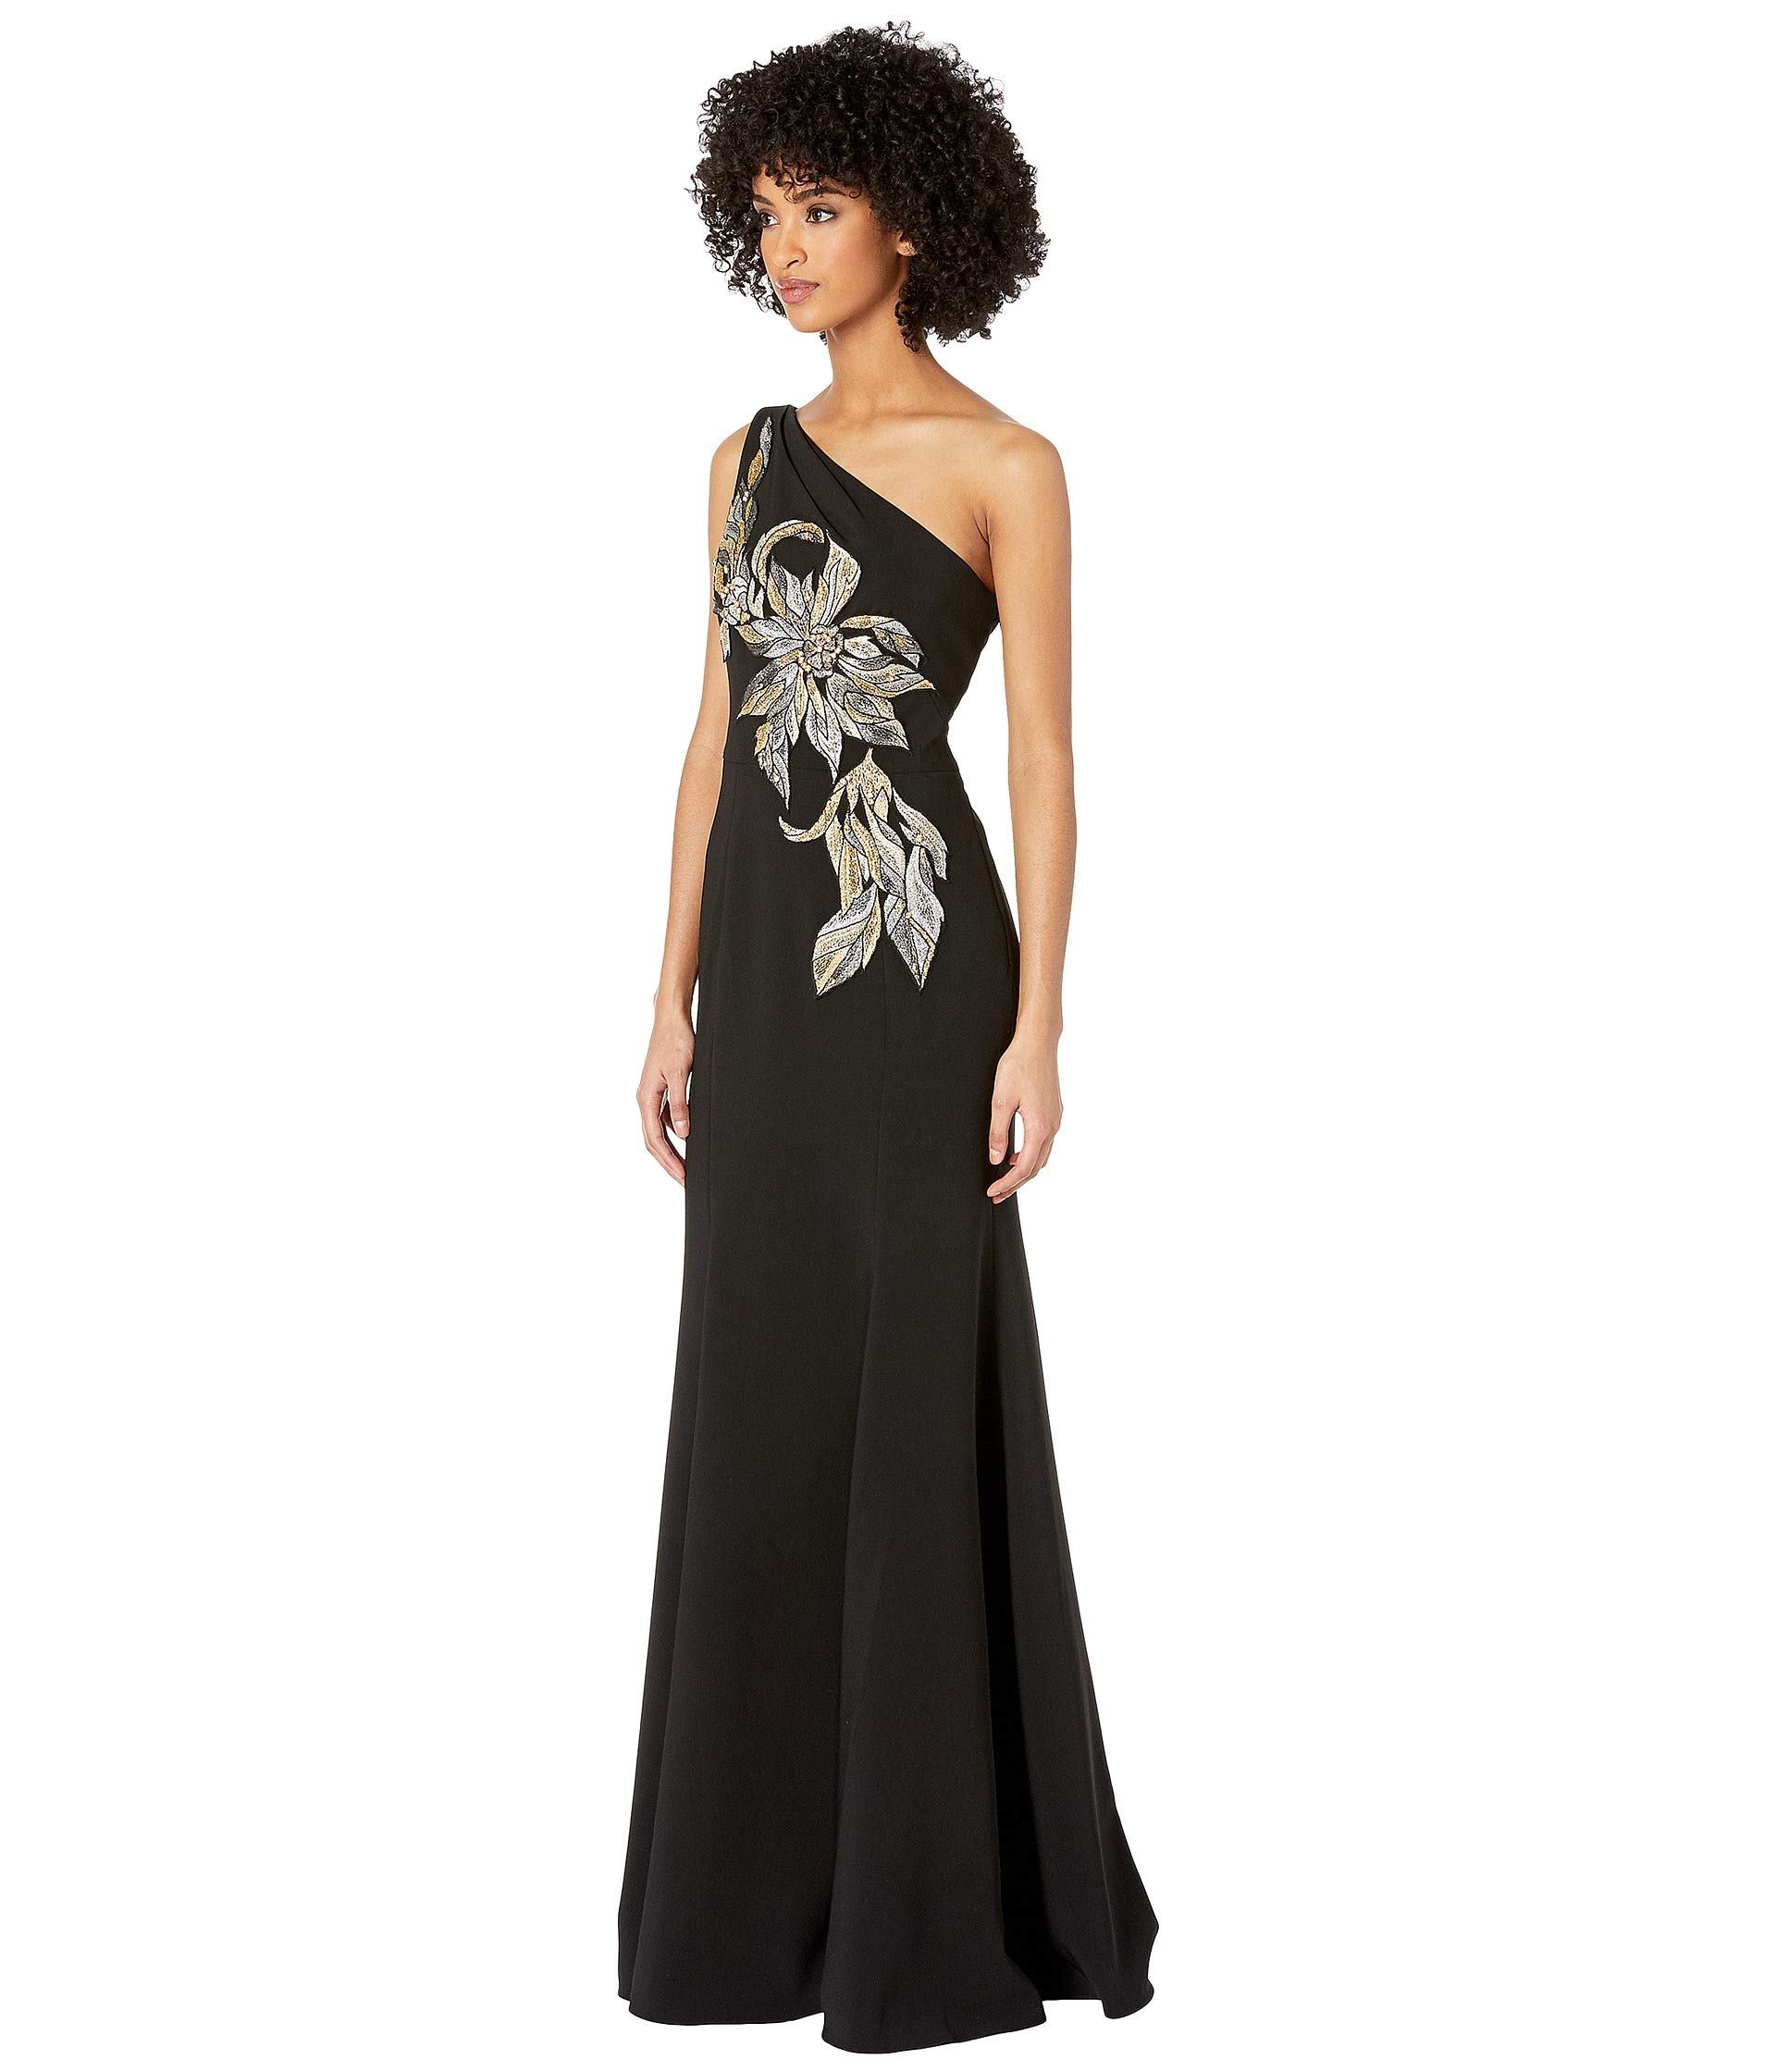 0050cabdb9 Marchesa Notte One Shoulder Stretch Crepe Gown with Beaded Embroidered  Appliques